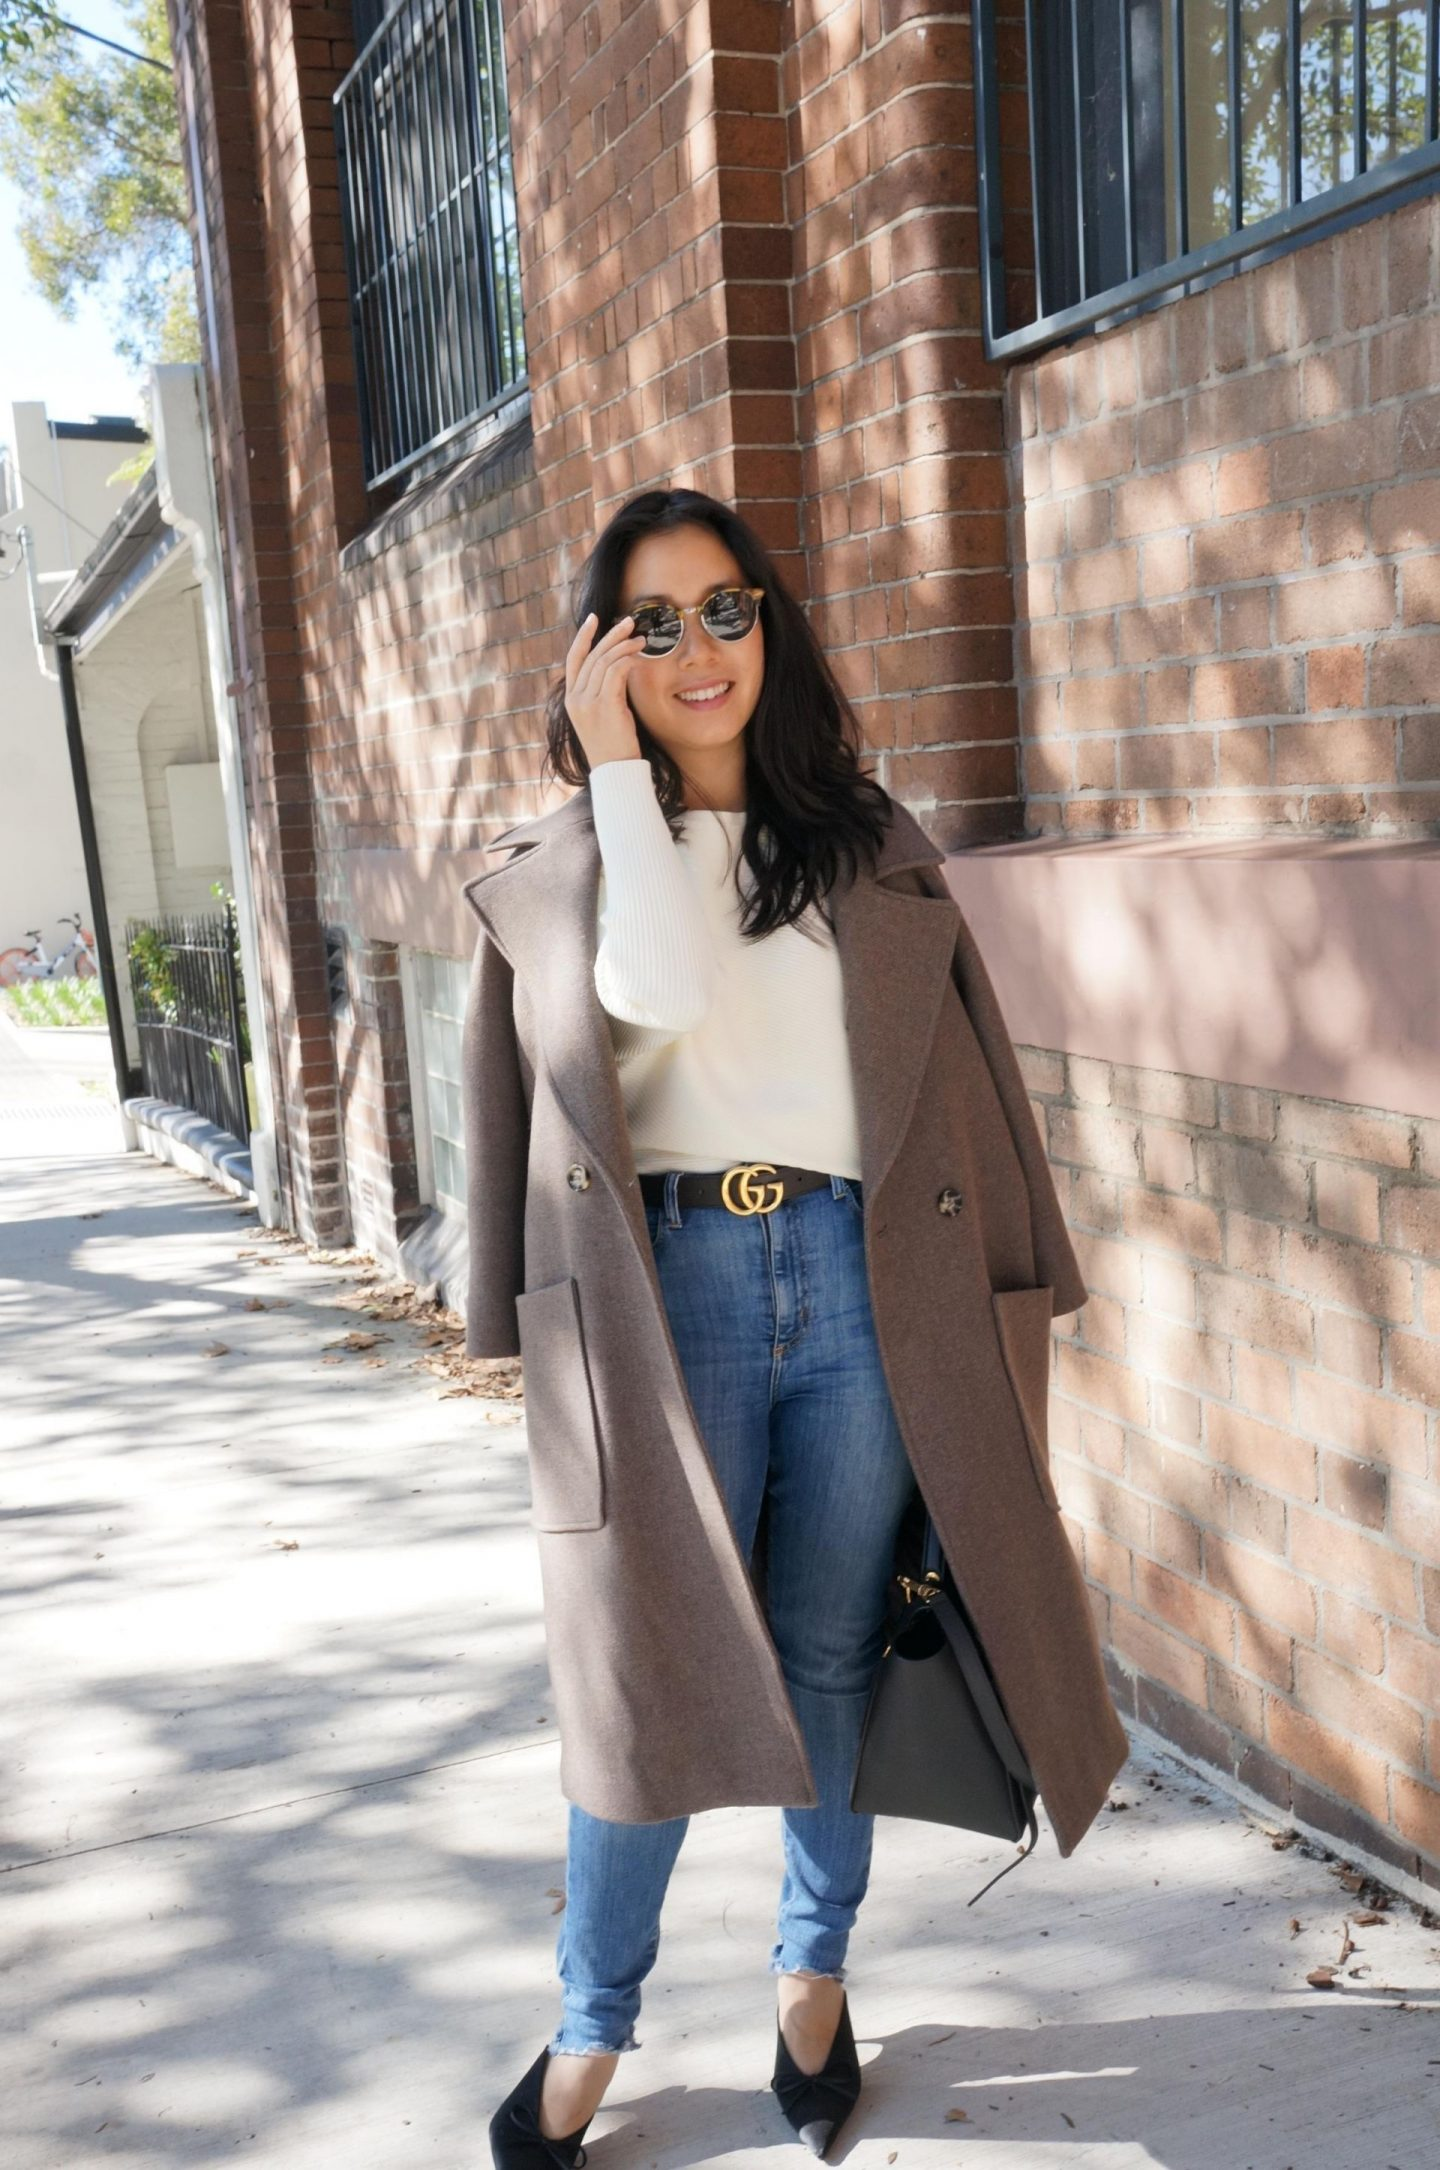 The Five Wardrobe Staples That Will Serve You All Year Round